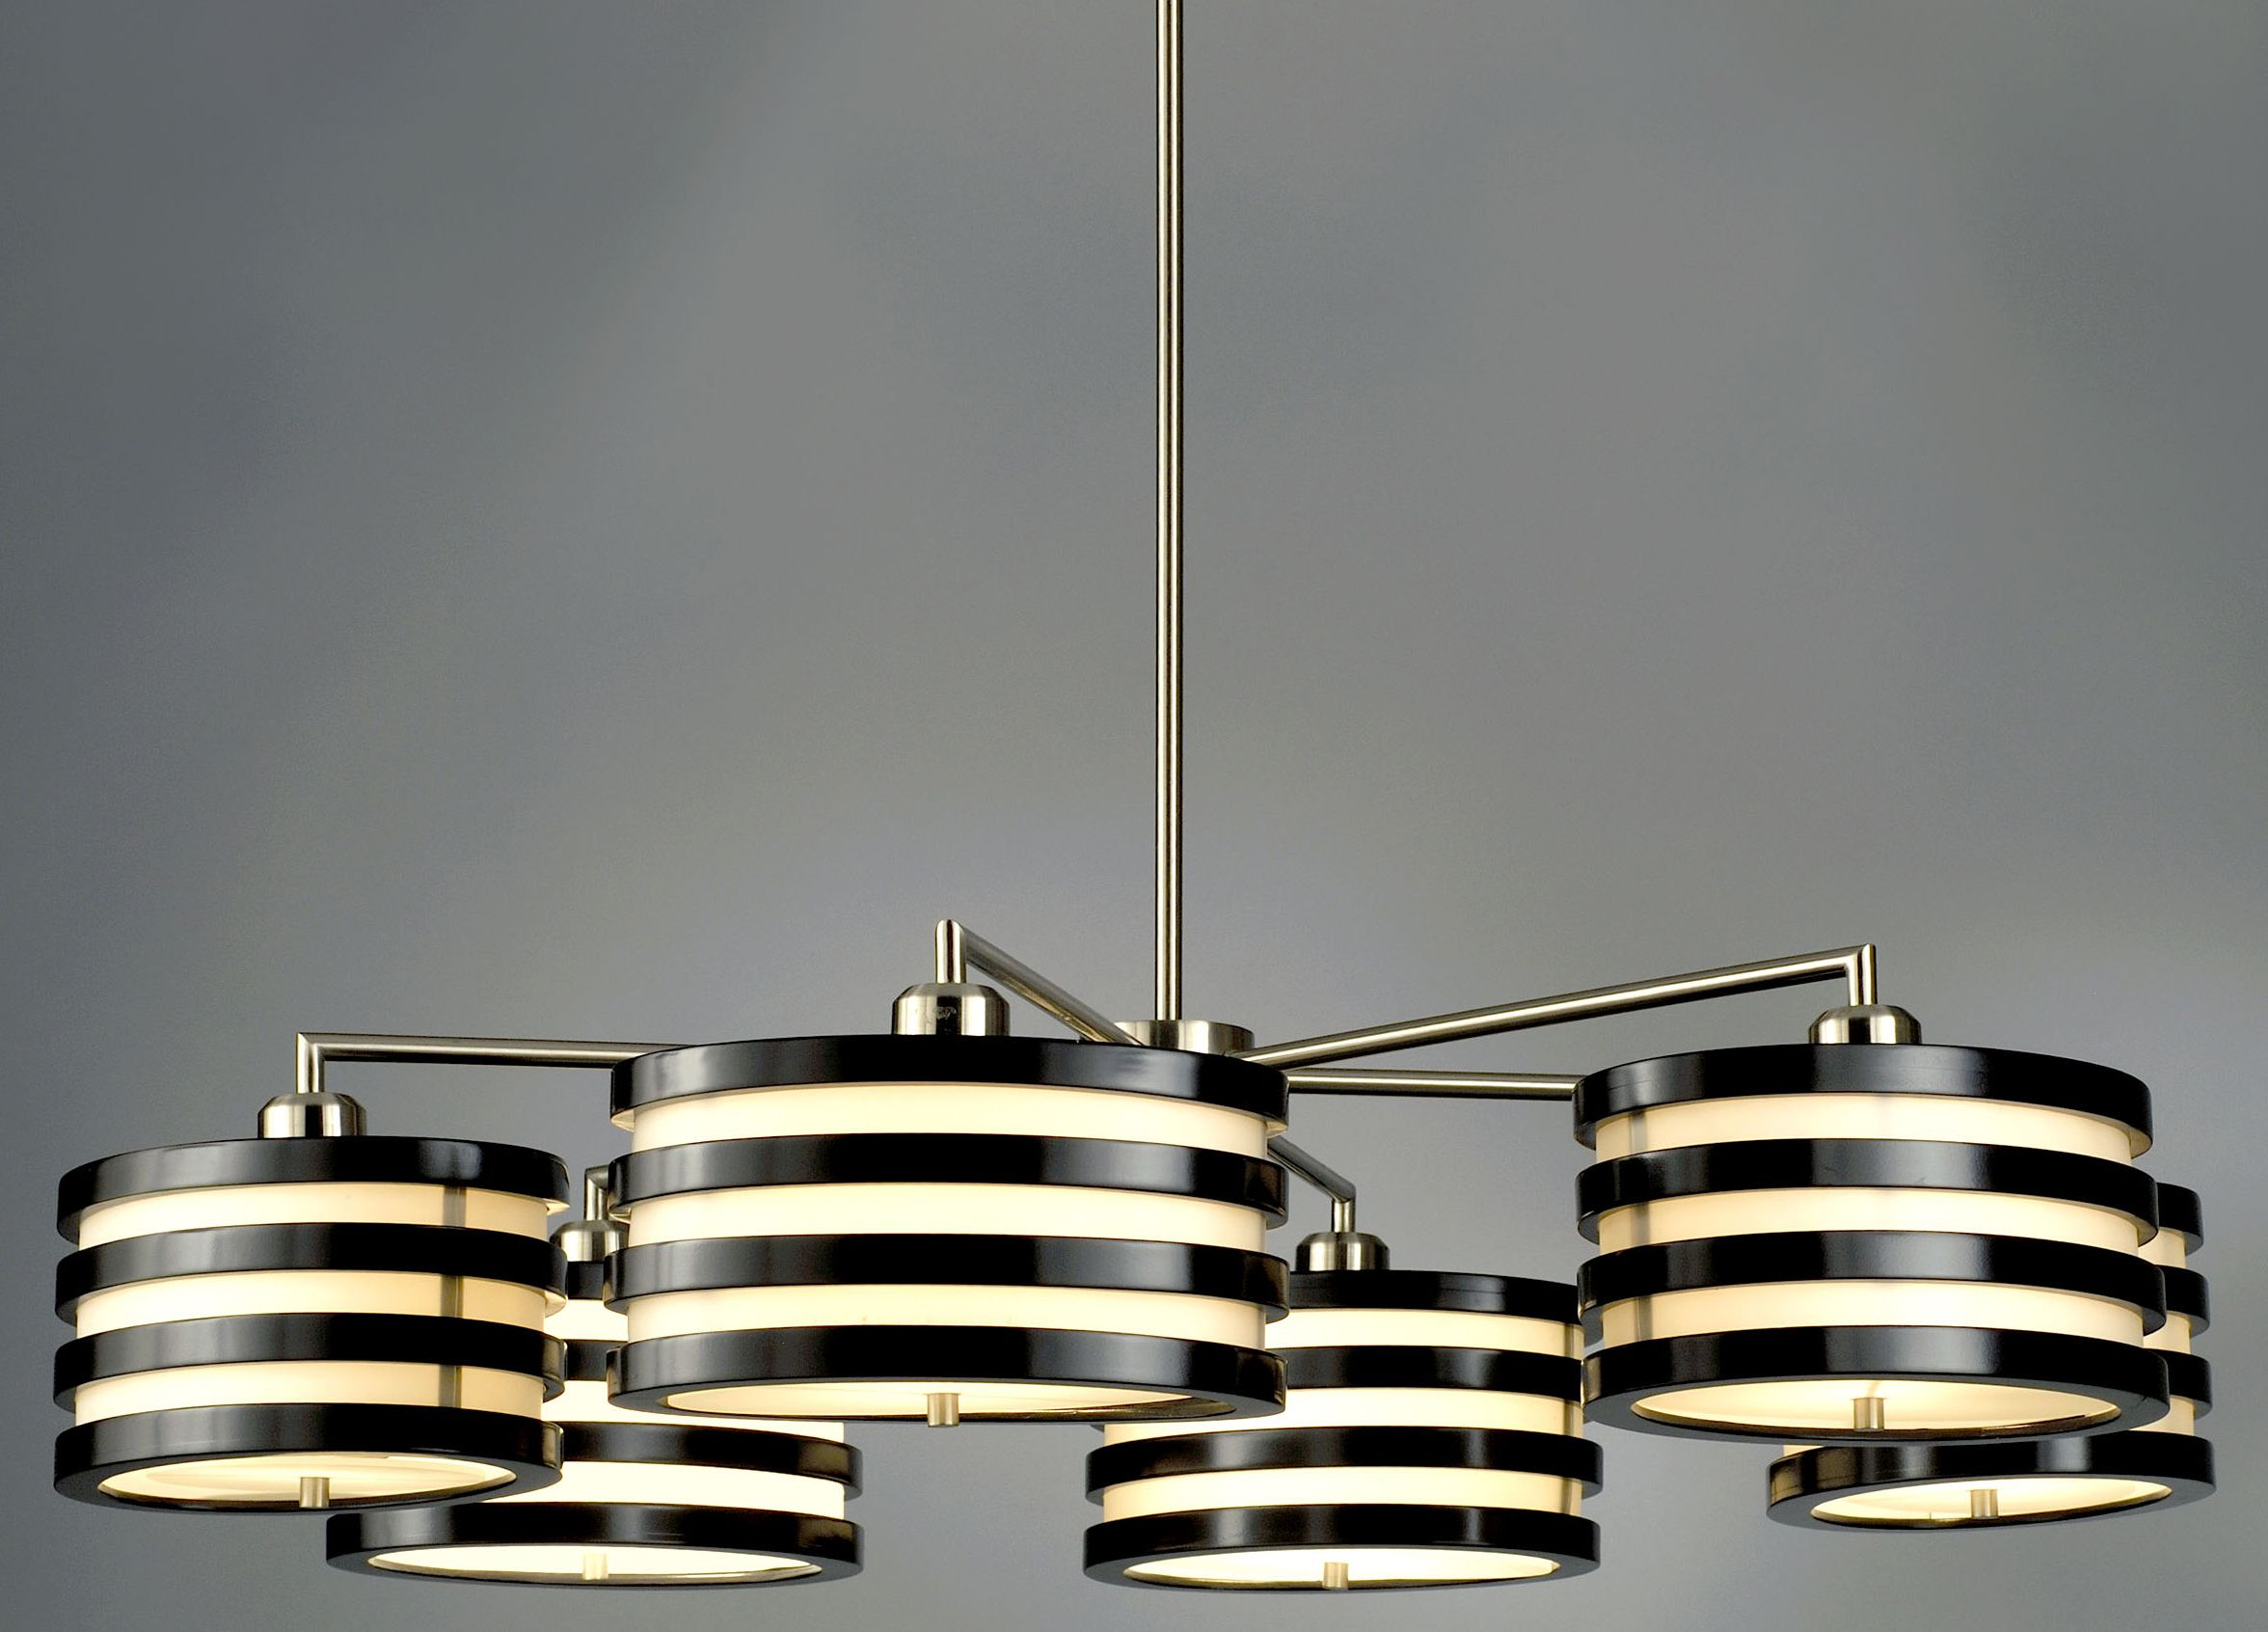 amazing lighting ideas lights best pinterest about modern crystal light chandeliers chandelier on